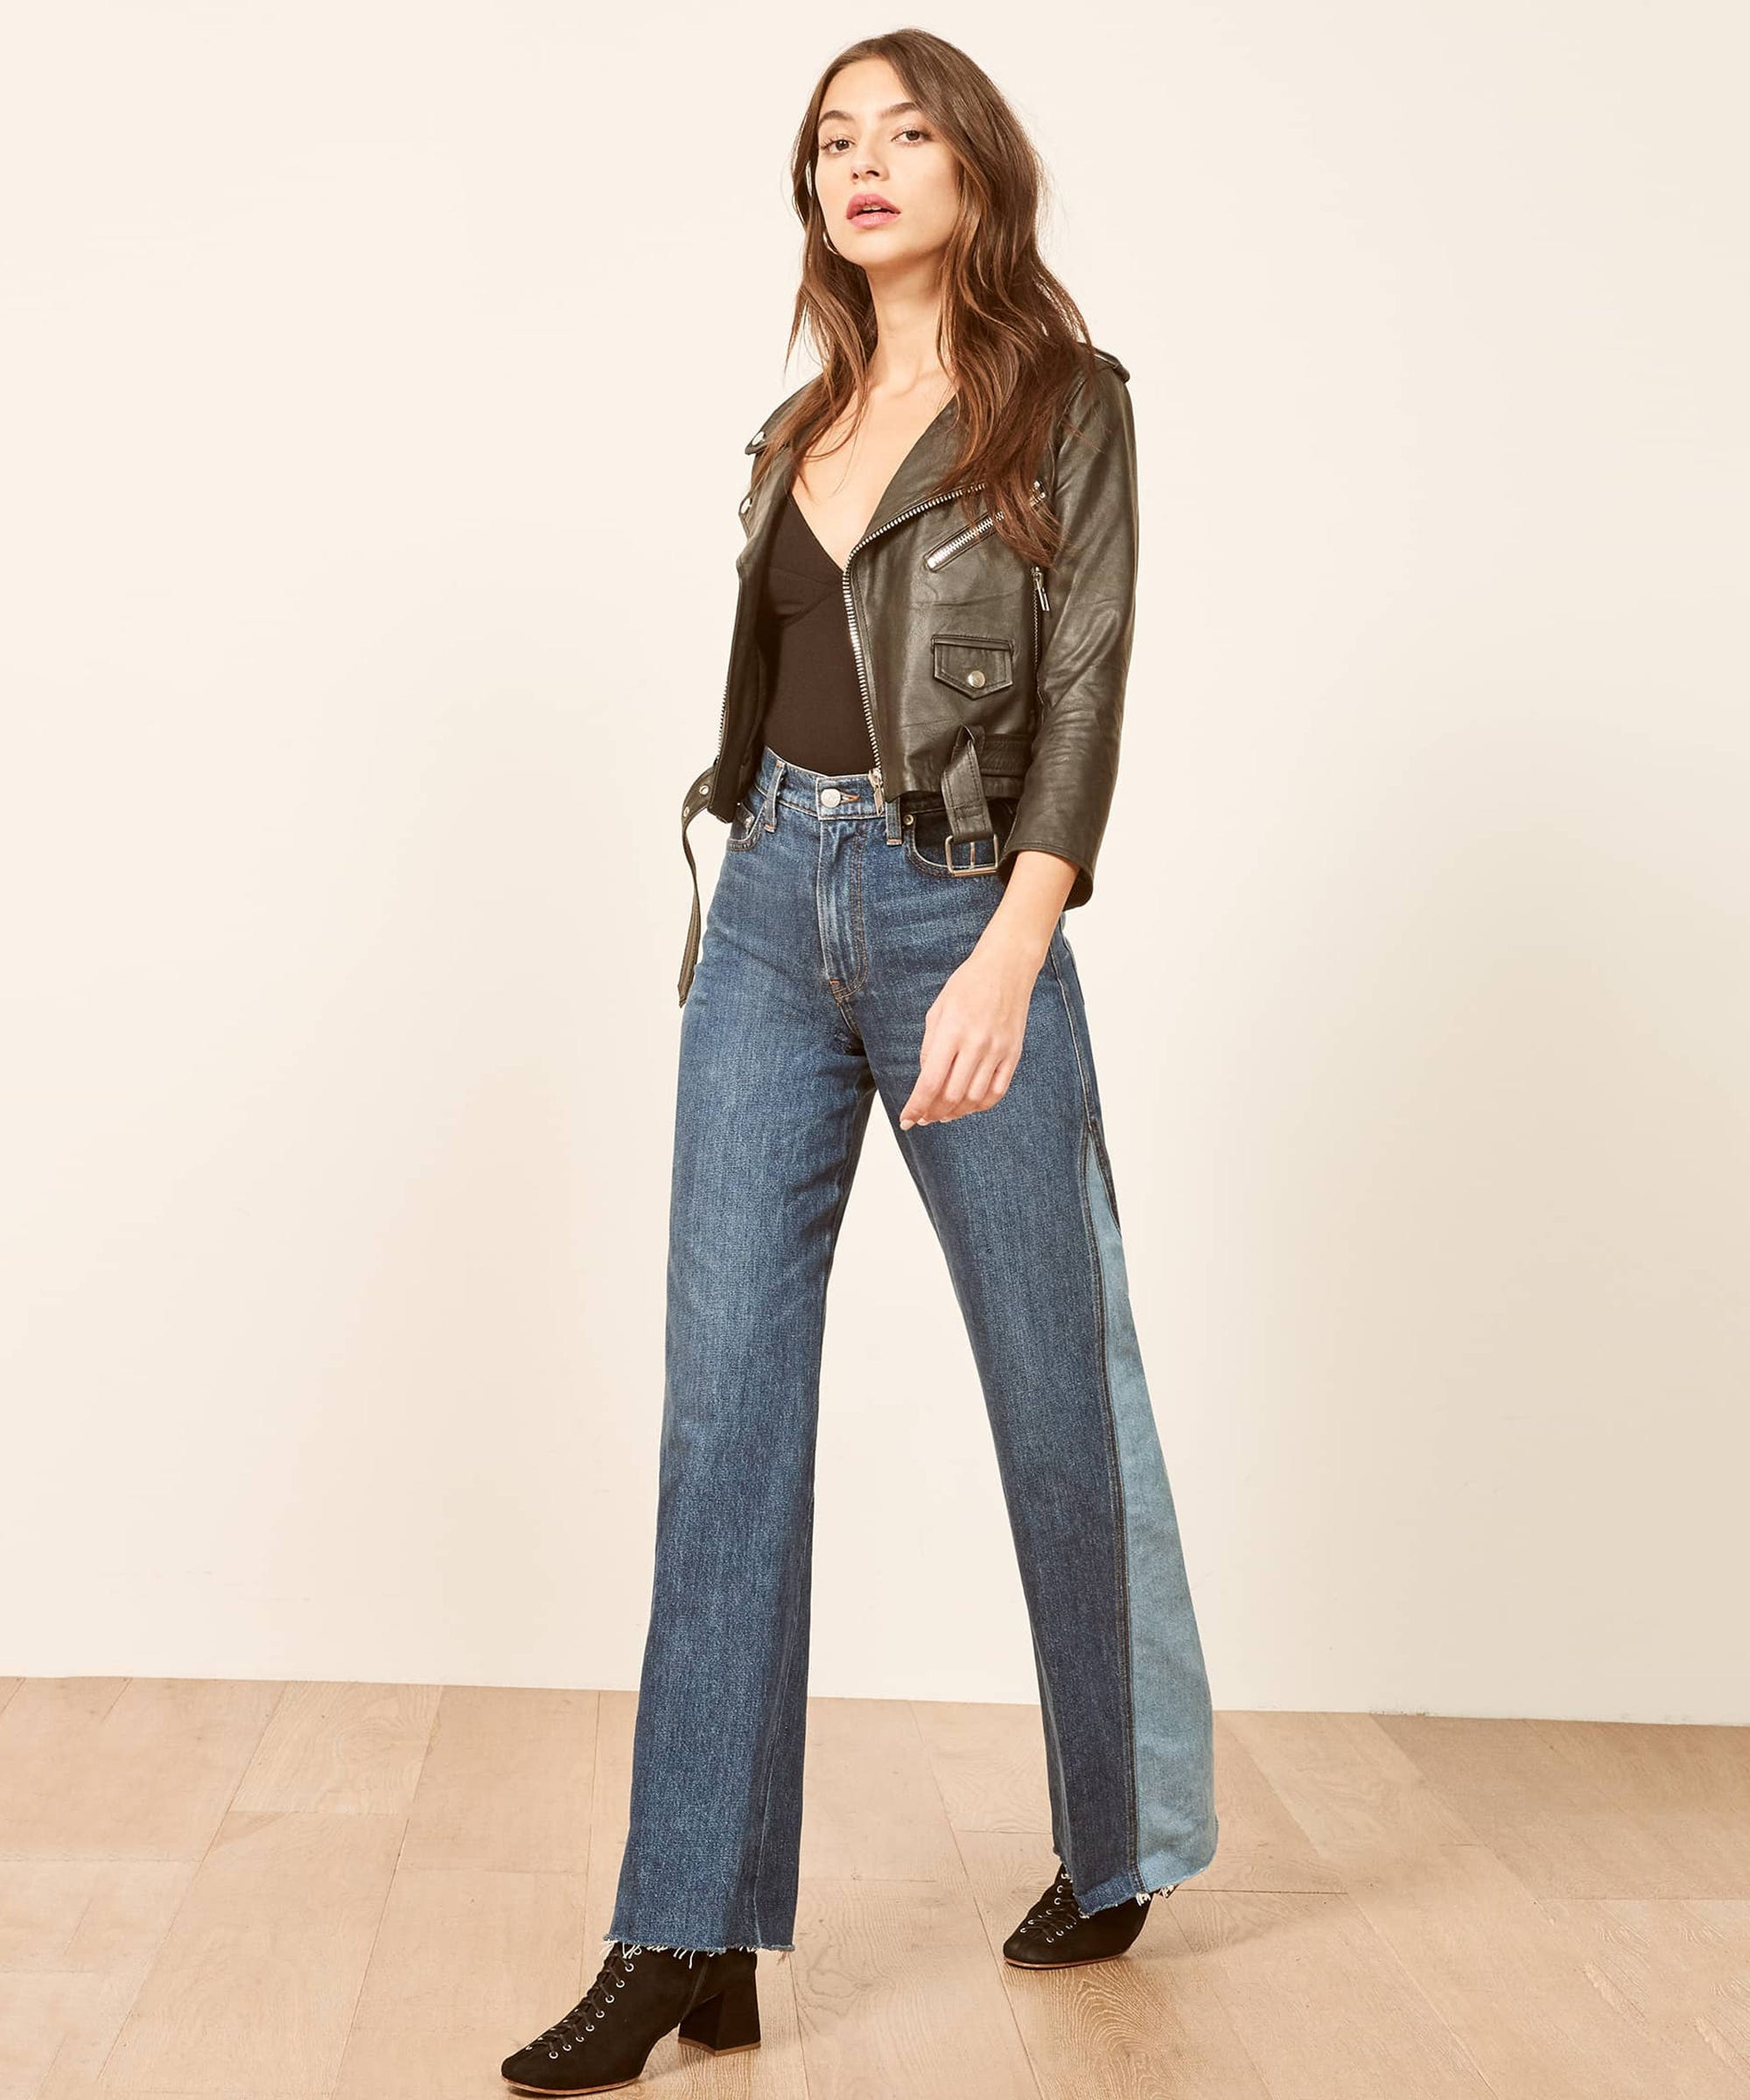 Denim Jean Trends That Are Going To Be Huge In 2019